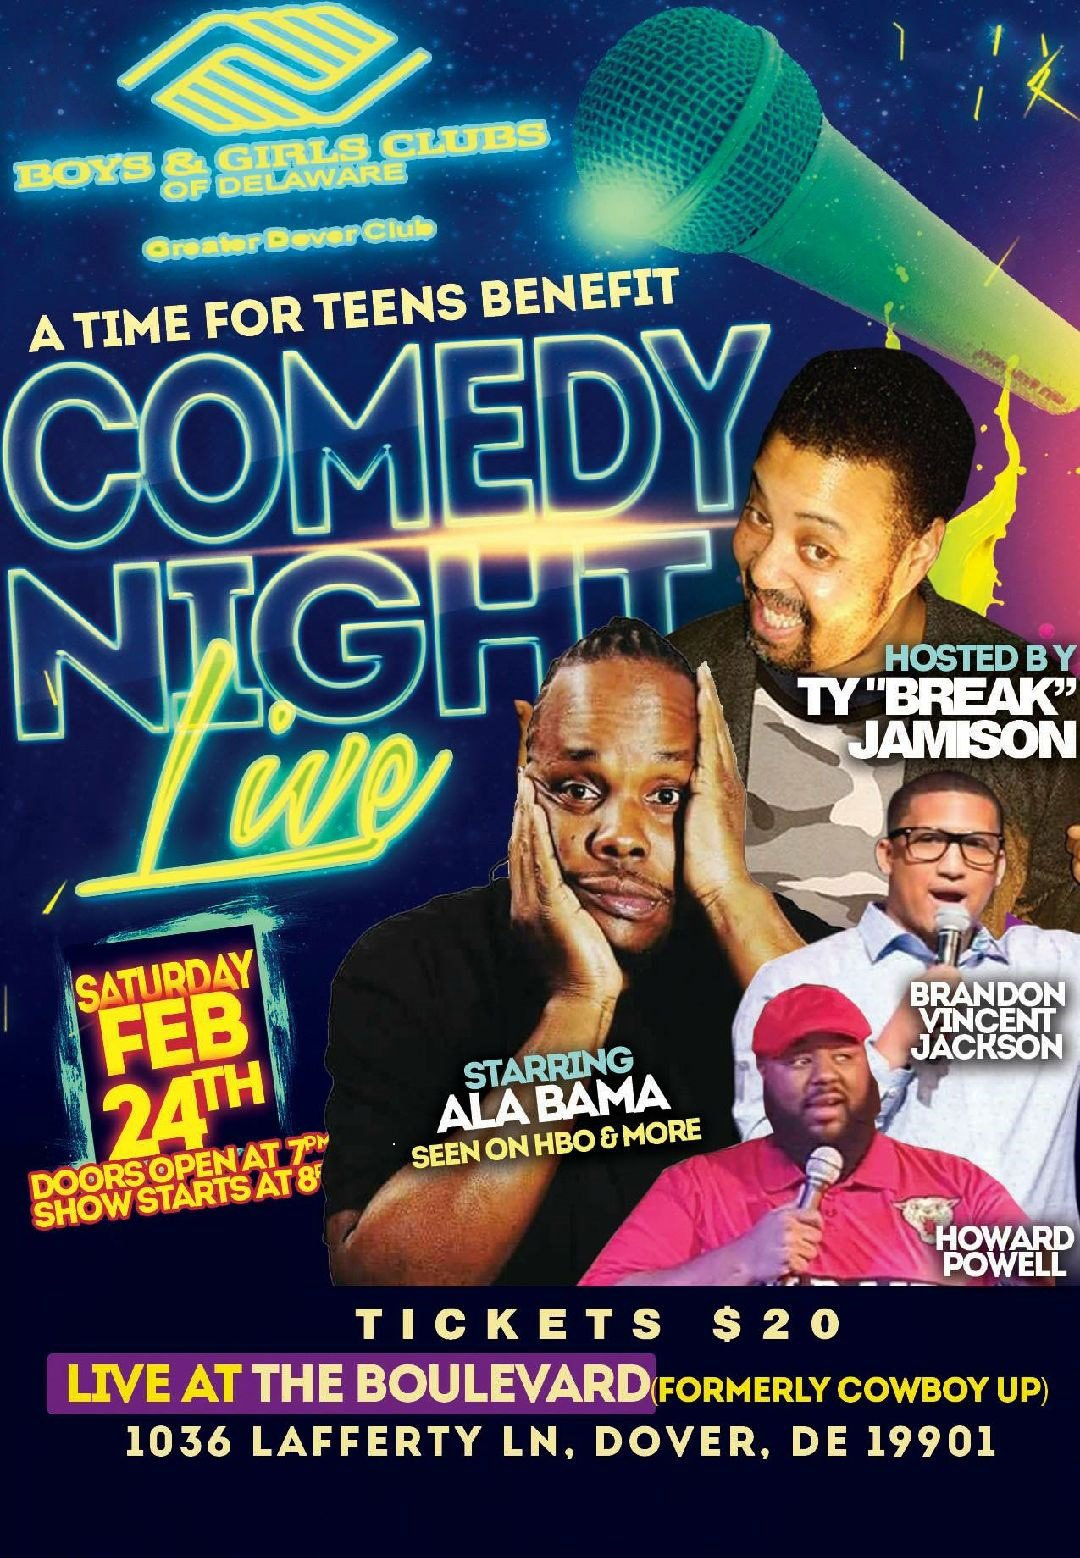 A Time for Teens Comedy Night